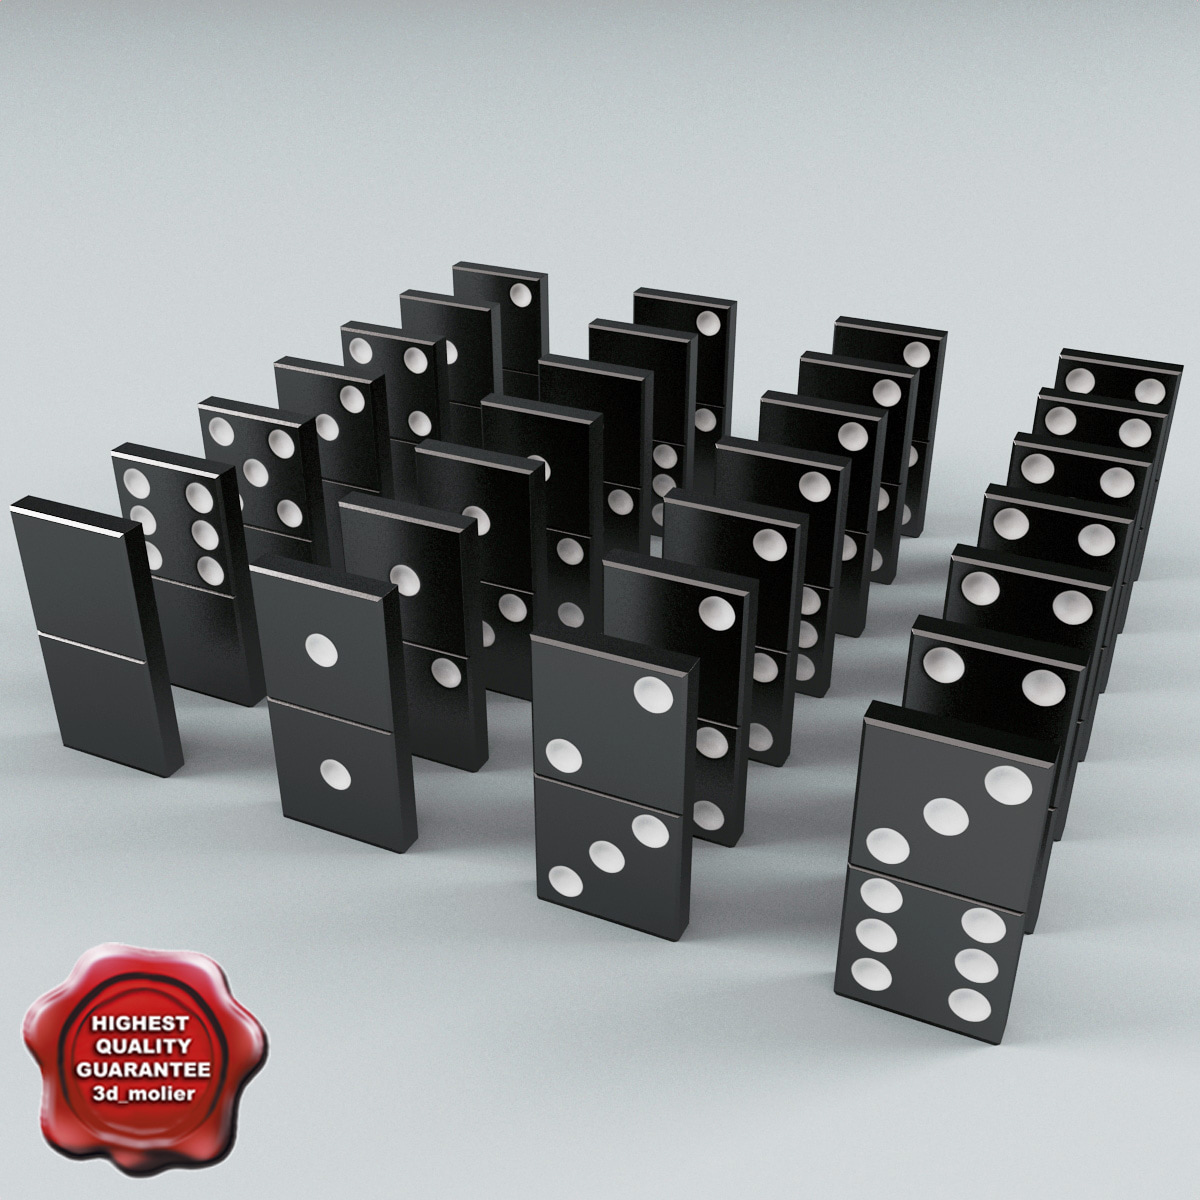 3ds max dominos Enjoy the vast offer of steam, origin, uplay, battlenet, gog, psn and xbox cd-keys at the most attractive prices on the market don't overpay – buy cheap on g2acom.